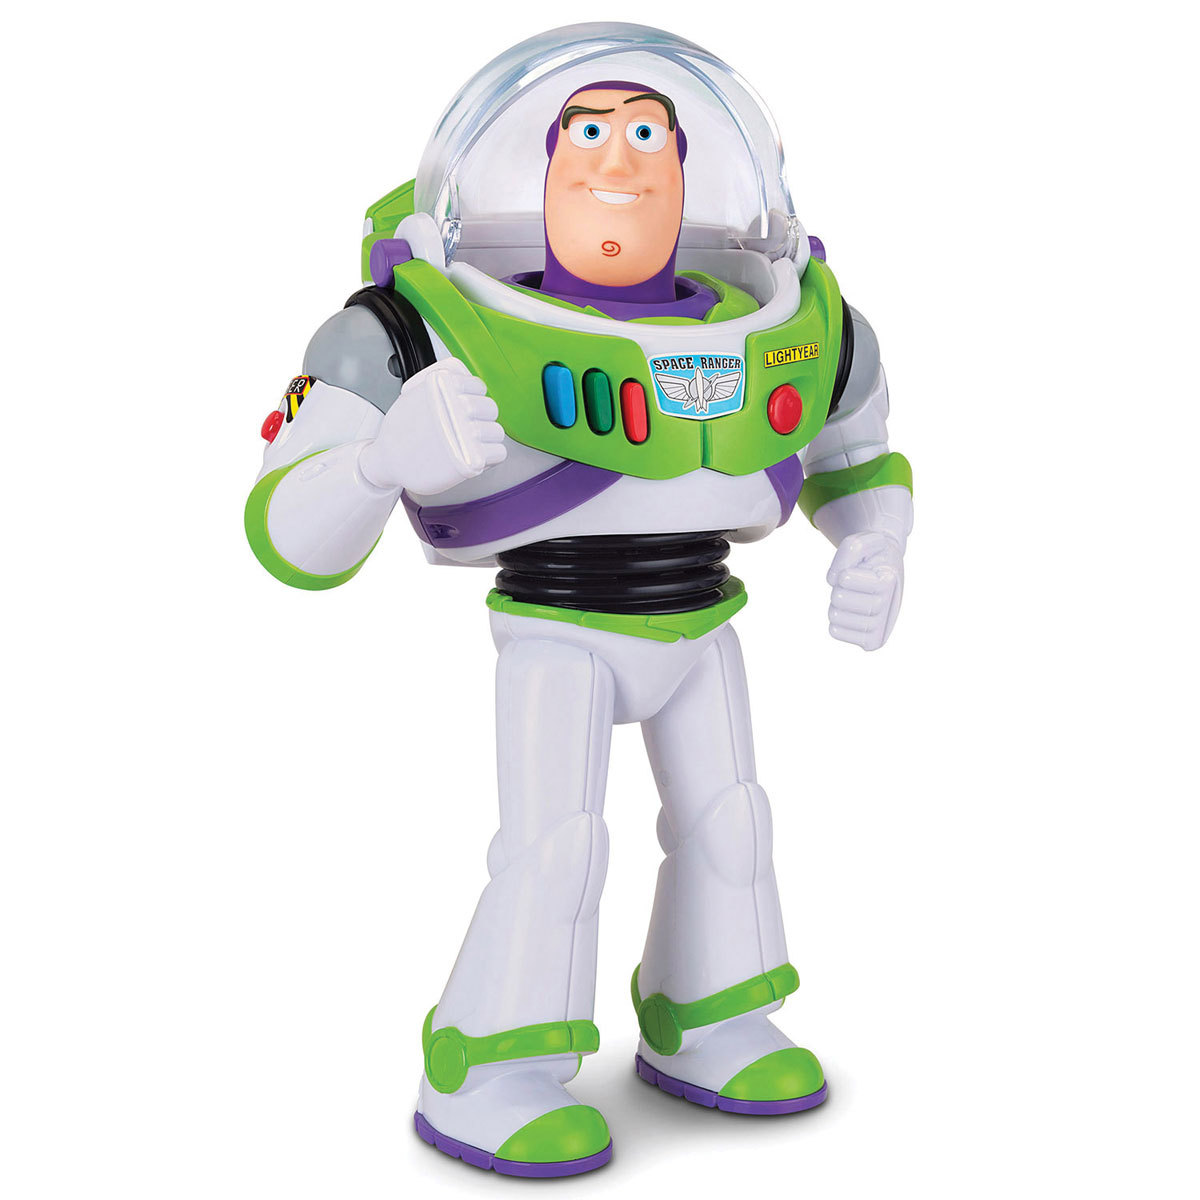 Disney Pixar Toy Story 4 Talking Action Figure - Buzz Lightyear from Early Learning Center